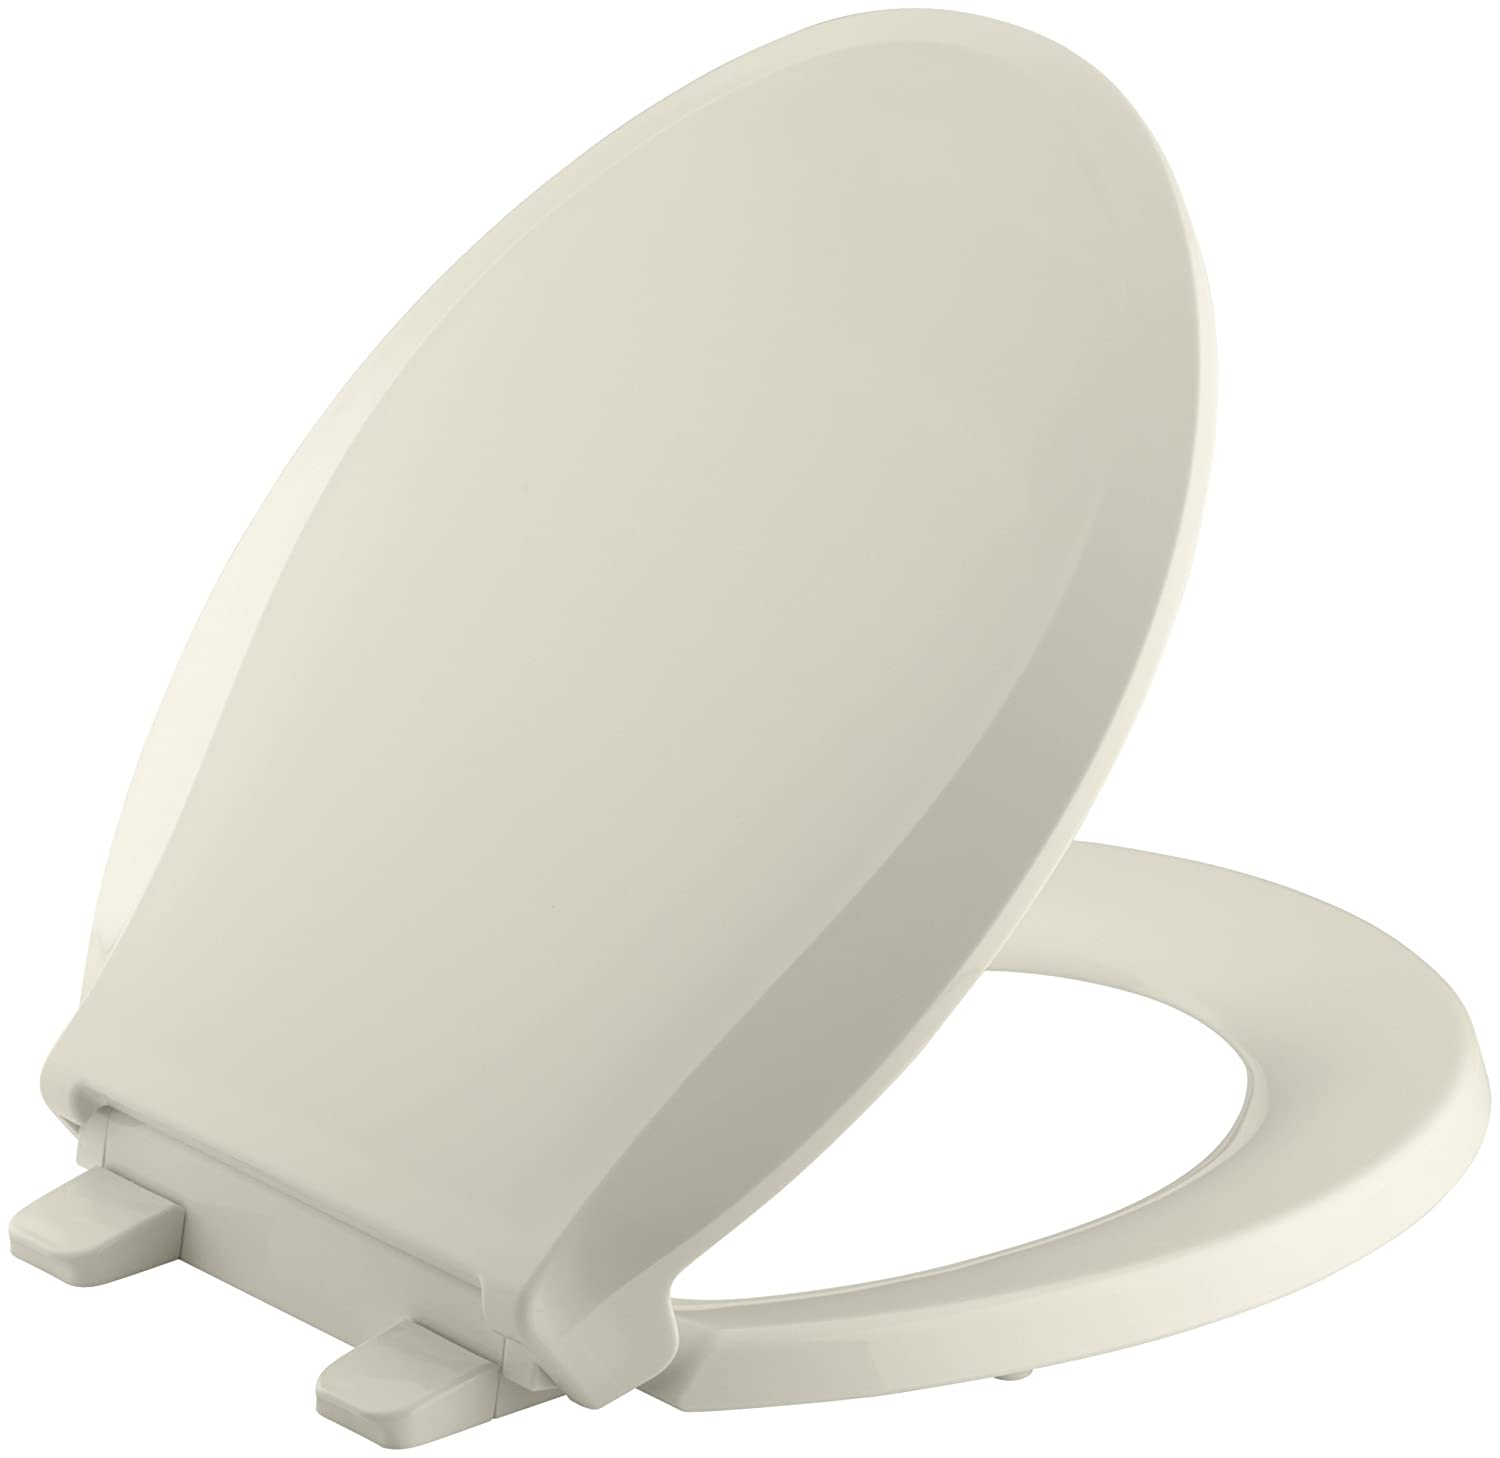 grey soft close toilet seat. KOHLER K 4639 47 Cachet Quiet Close with Grip Tight Bumpers Round front Toilet  Seat Almond Amazon com